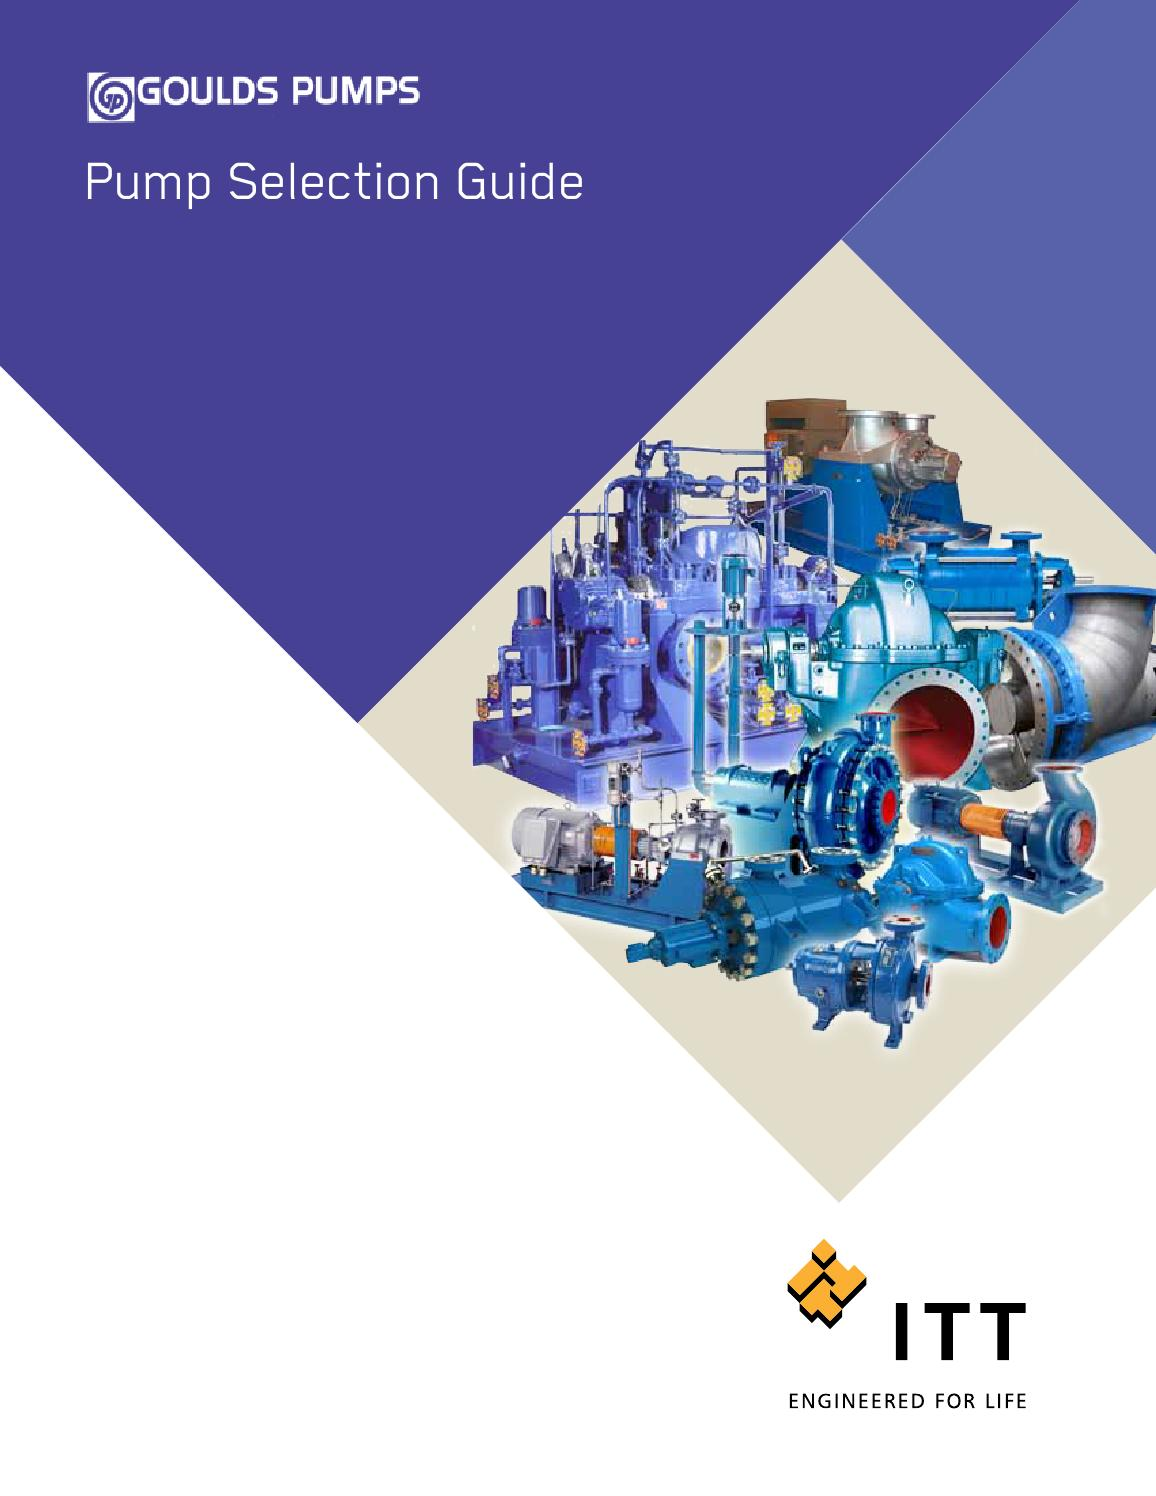 Goulds Pumps Pump Selection Guide by Tencarva Machinery Company - issuu